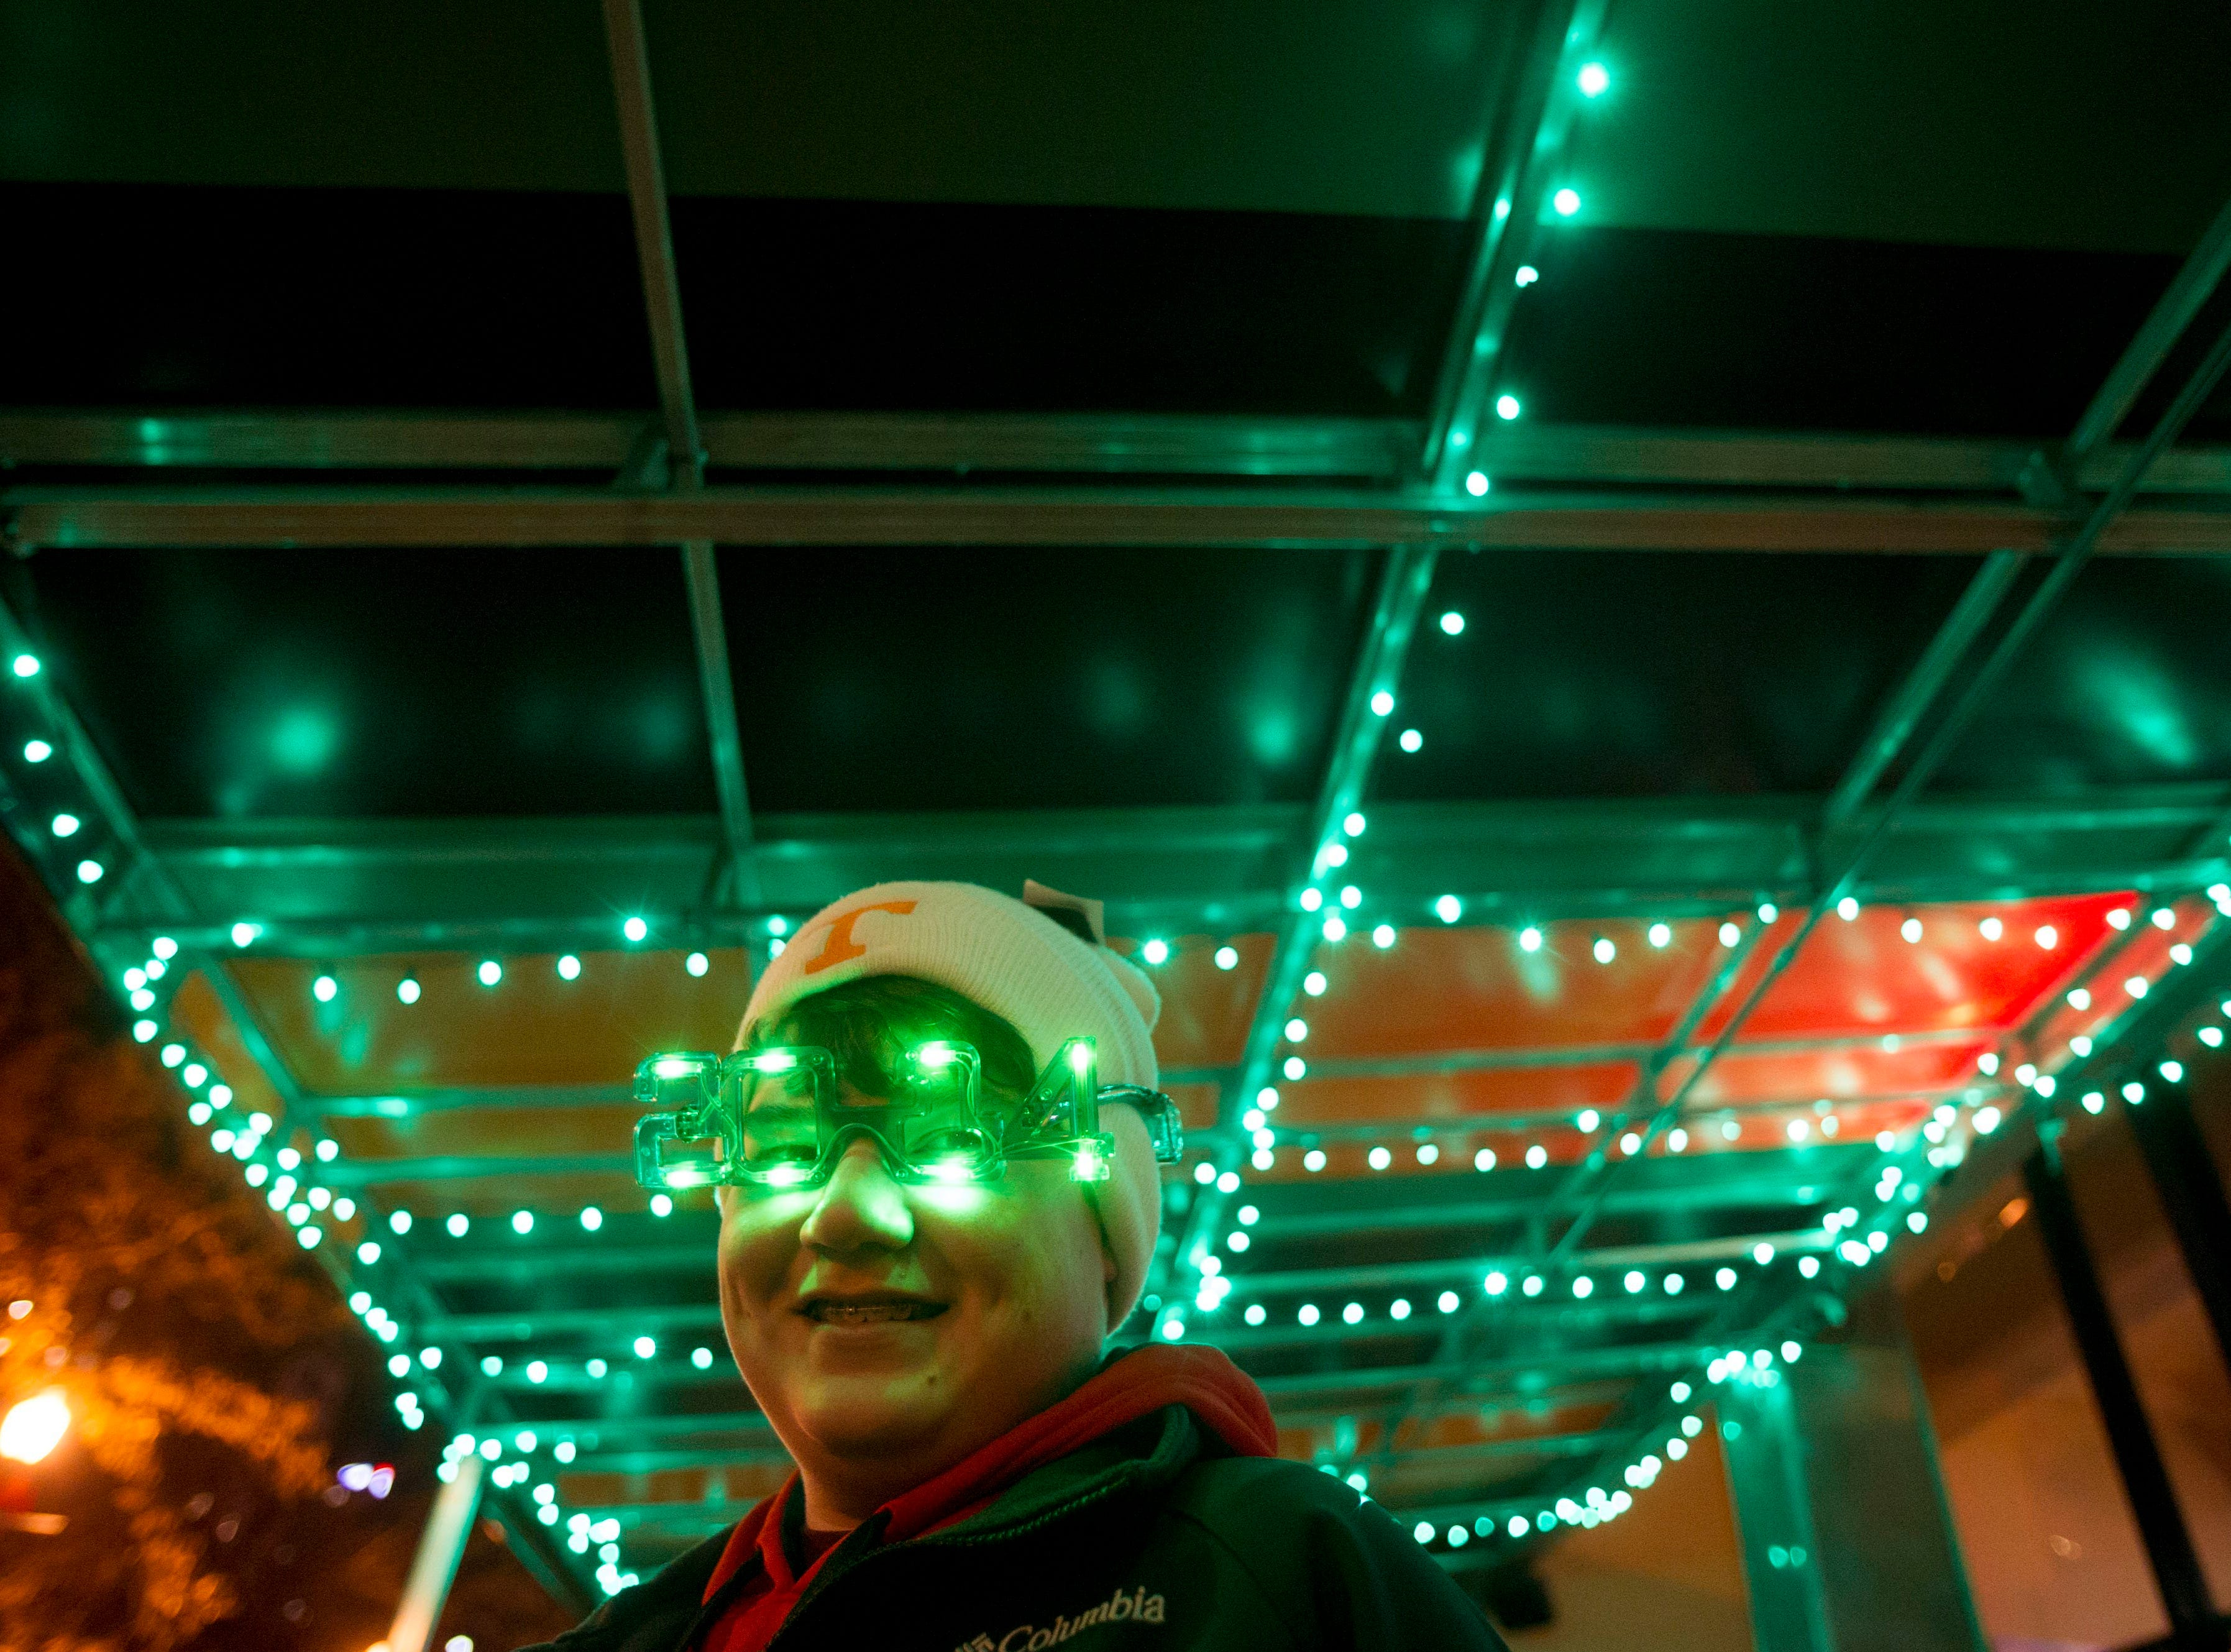 Caleb Copeland celebrates New Year's Eve at Market Square on Tuesday, December 31, 2013.